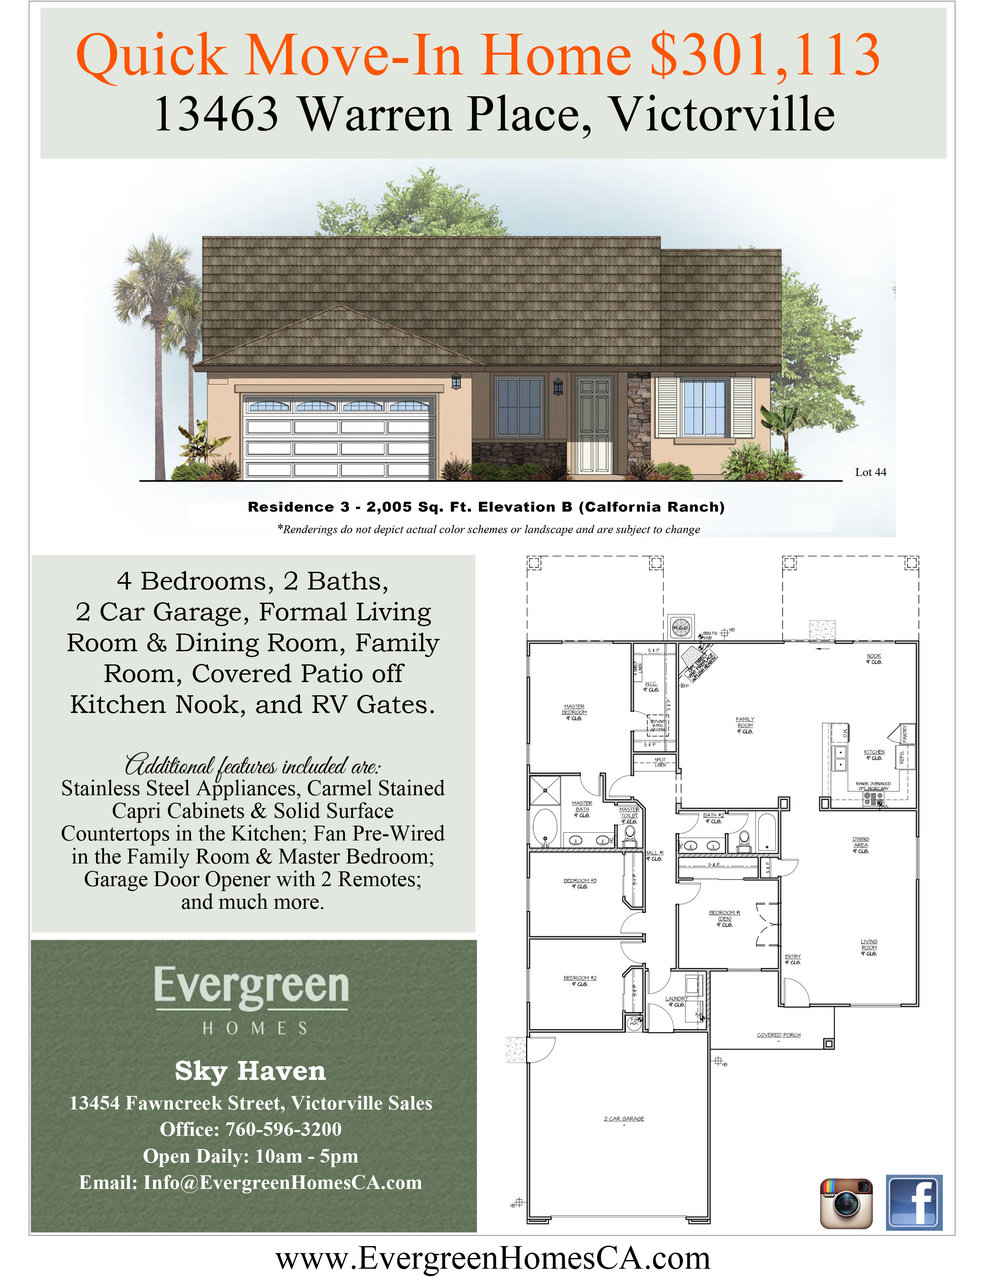 Flyer__Lot 44__Sky Haven__2.6.18.jpg